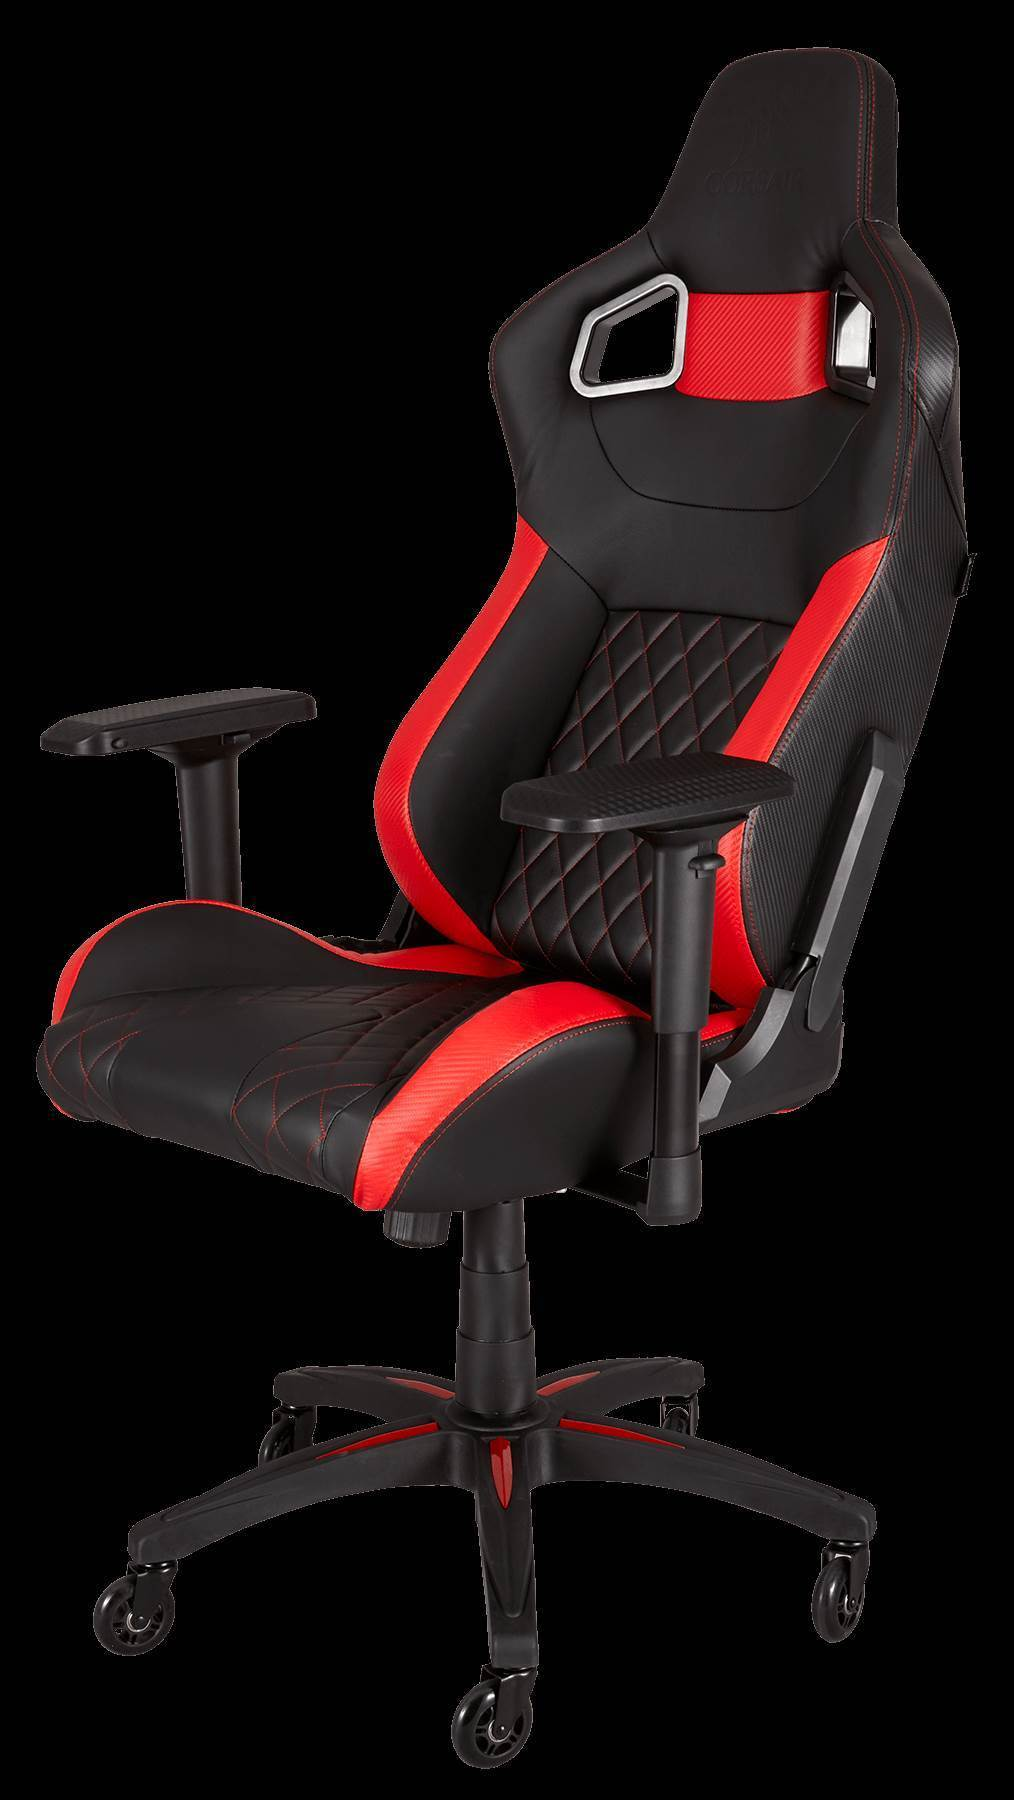 Corsair Finally Lifts The Lid On Its New Gaming Chair And